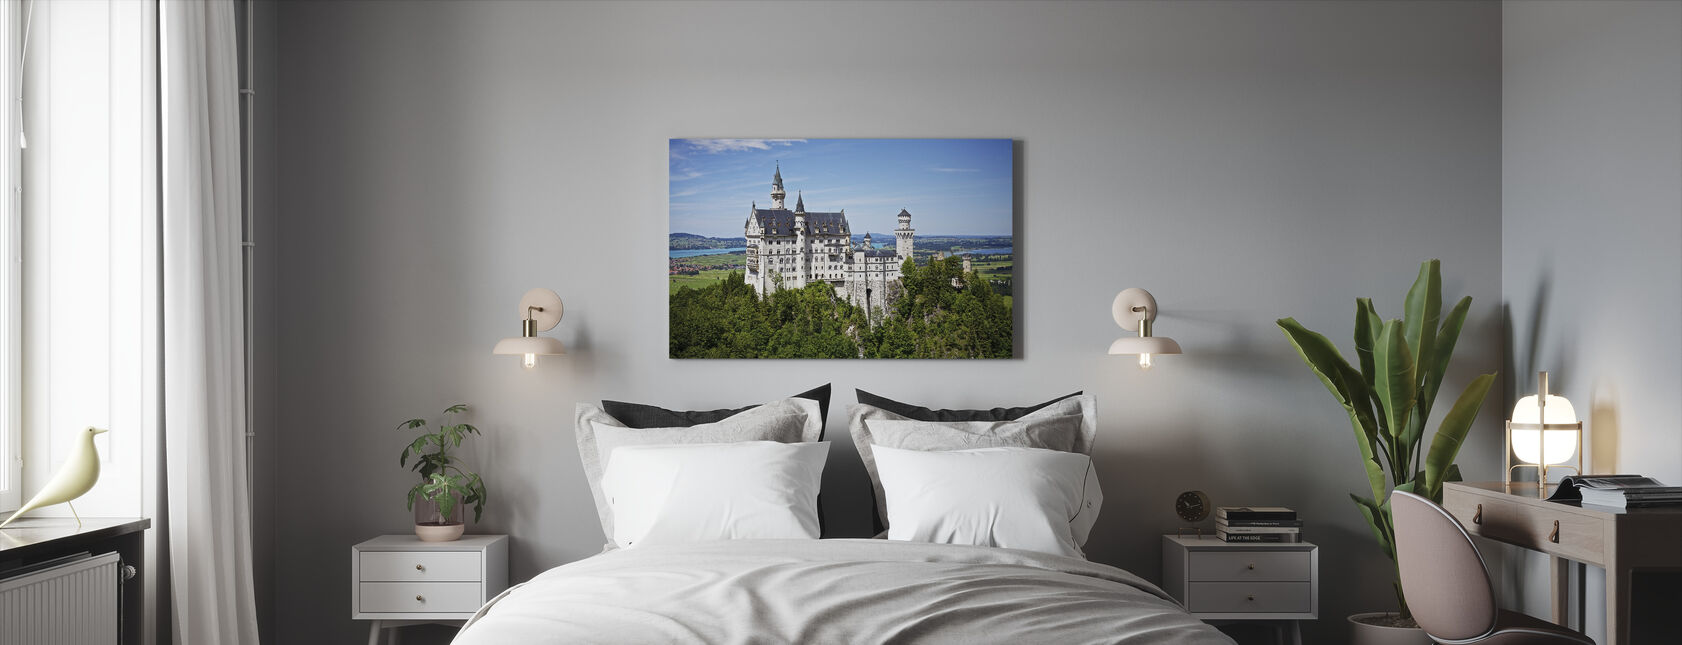 Neuschwanstein Disney Castle - Canvas print - Bedroom